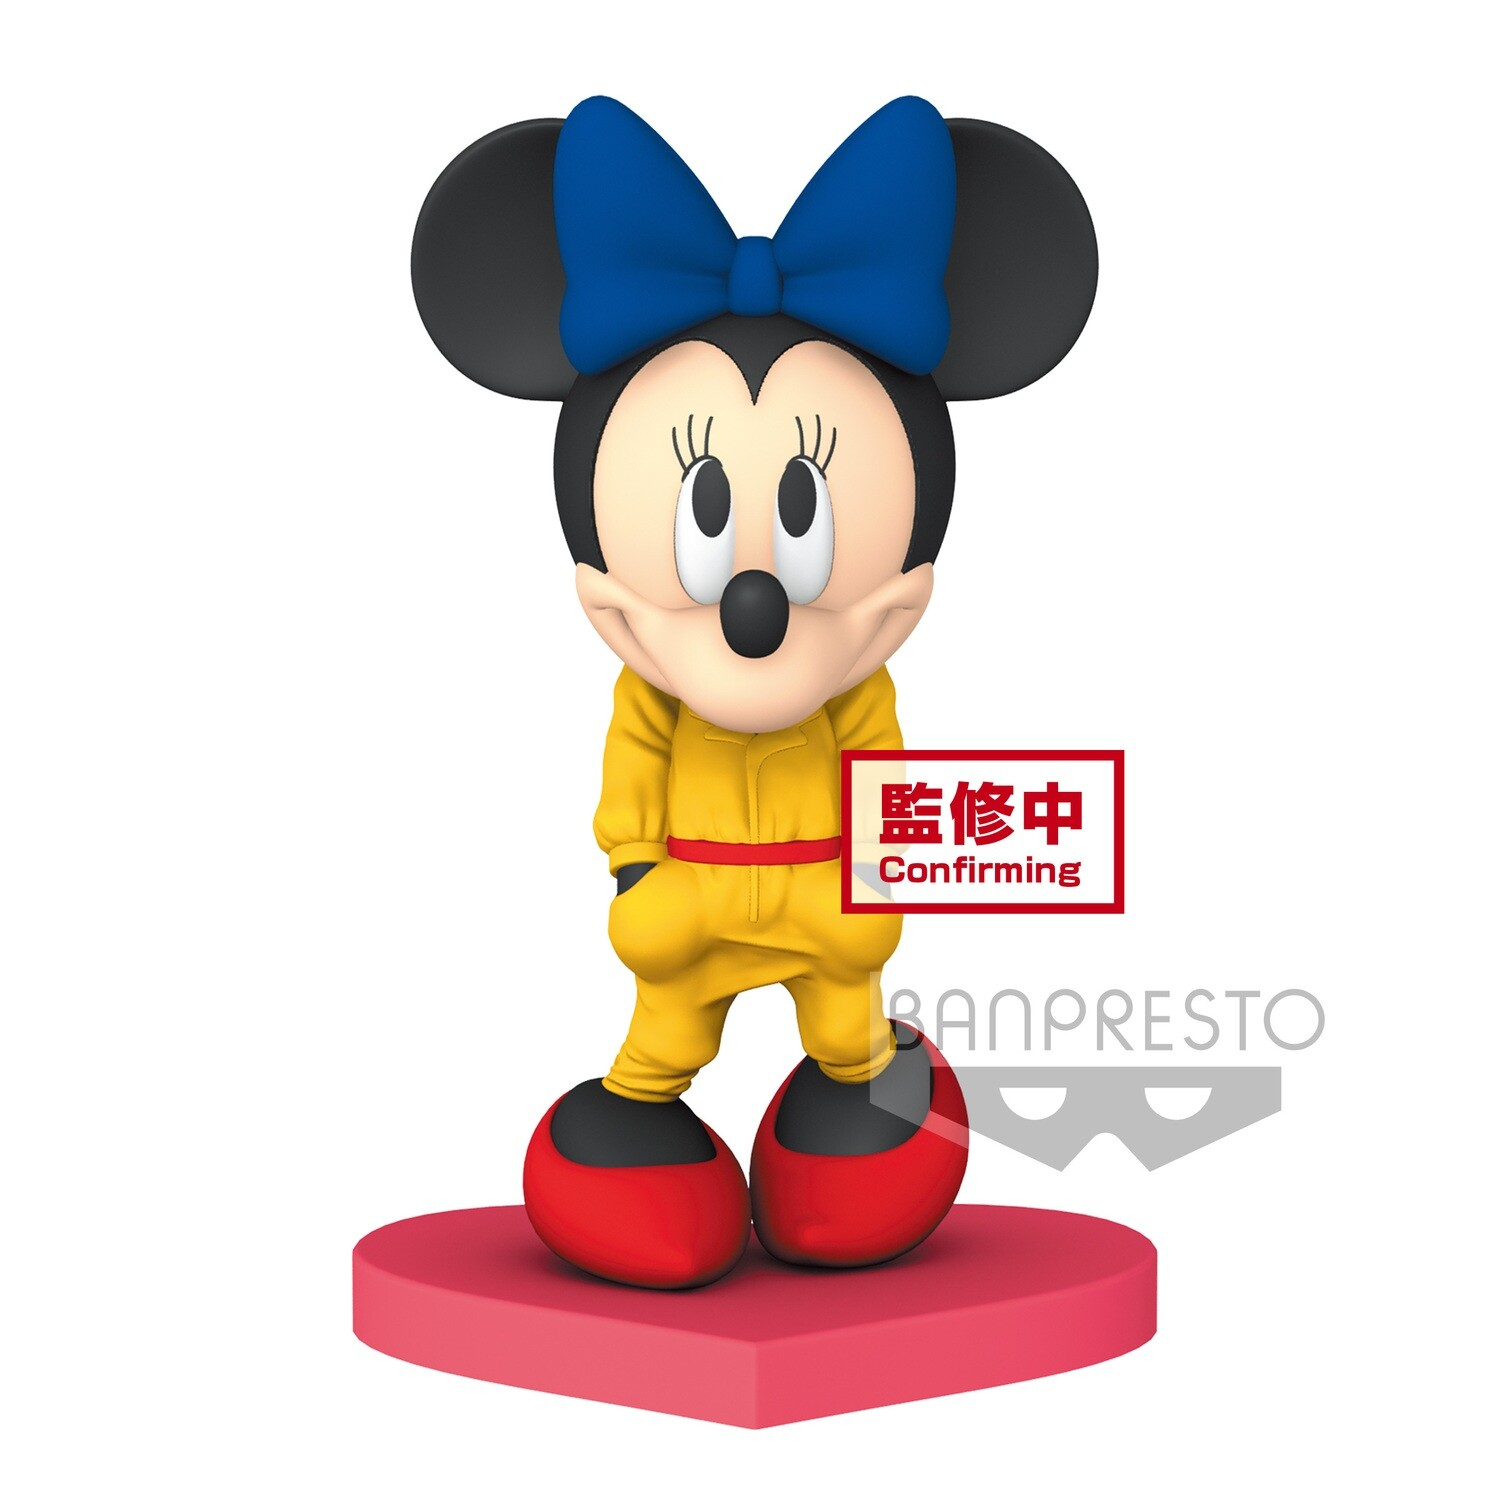 Banpresto Disney Characters Best Dressed Minnie Mouse Ver. A